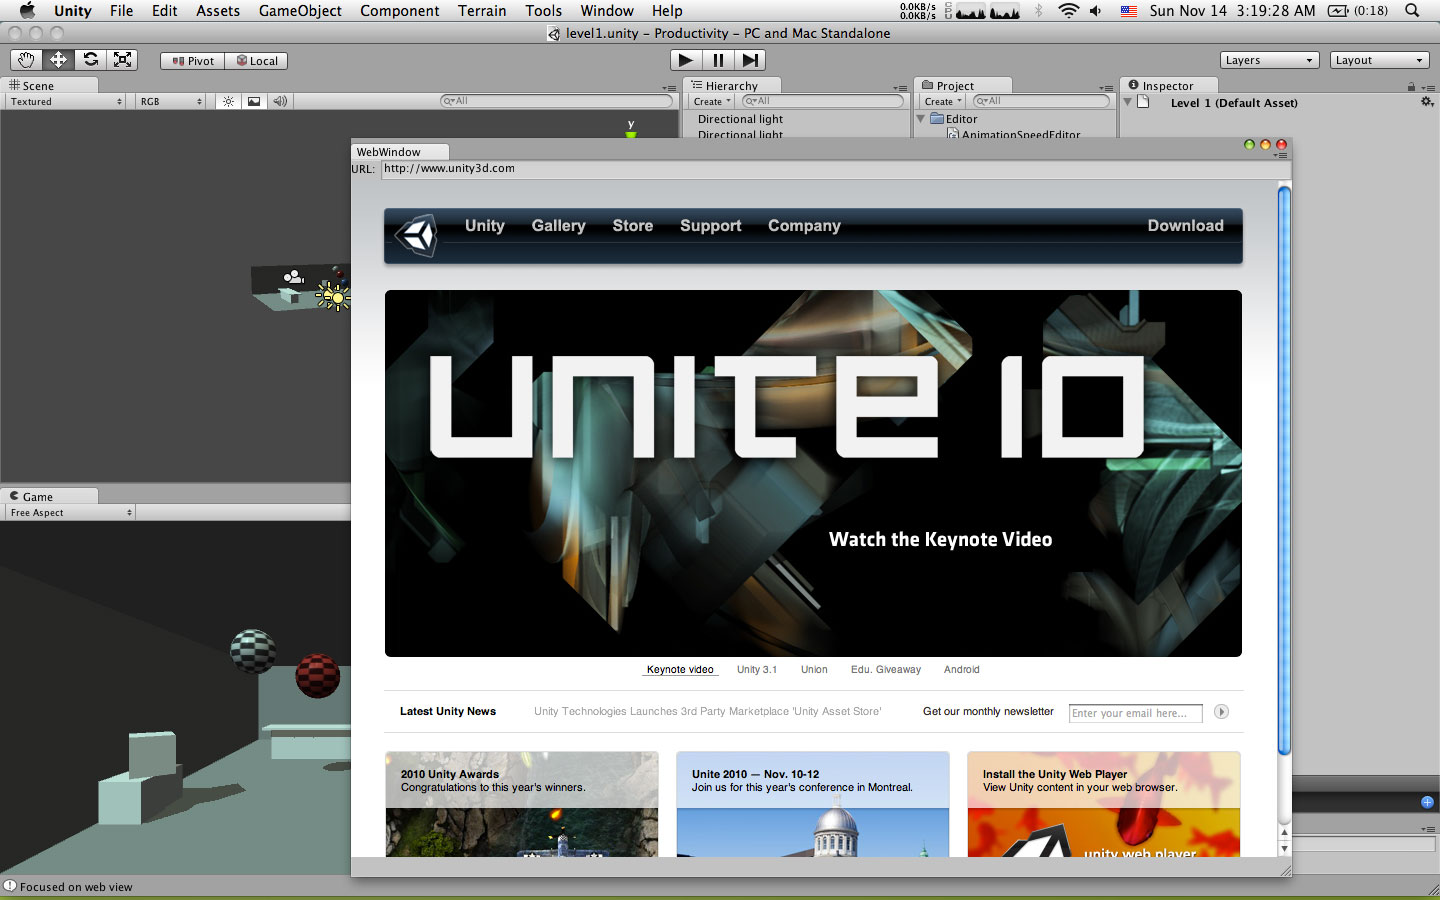 Browsing the web within Unity Editor - Unity Forum